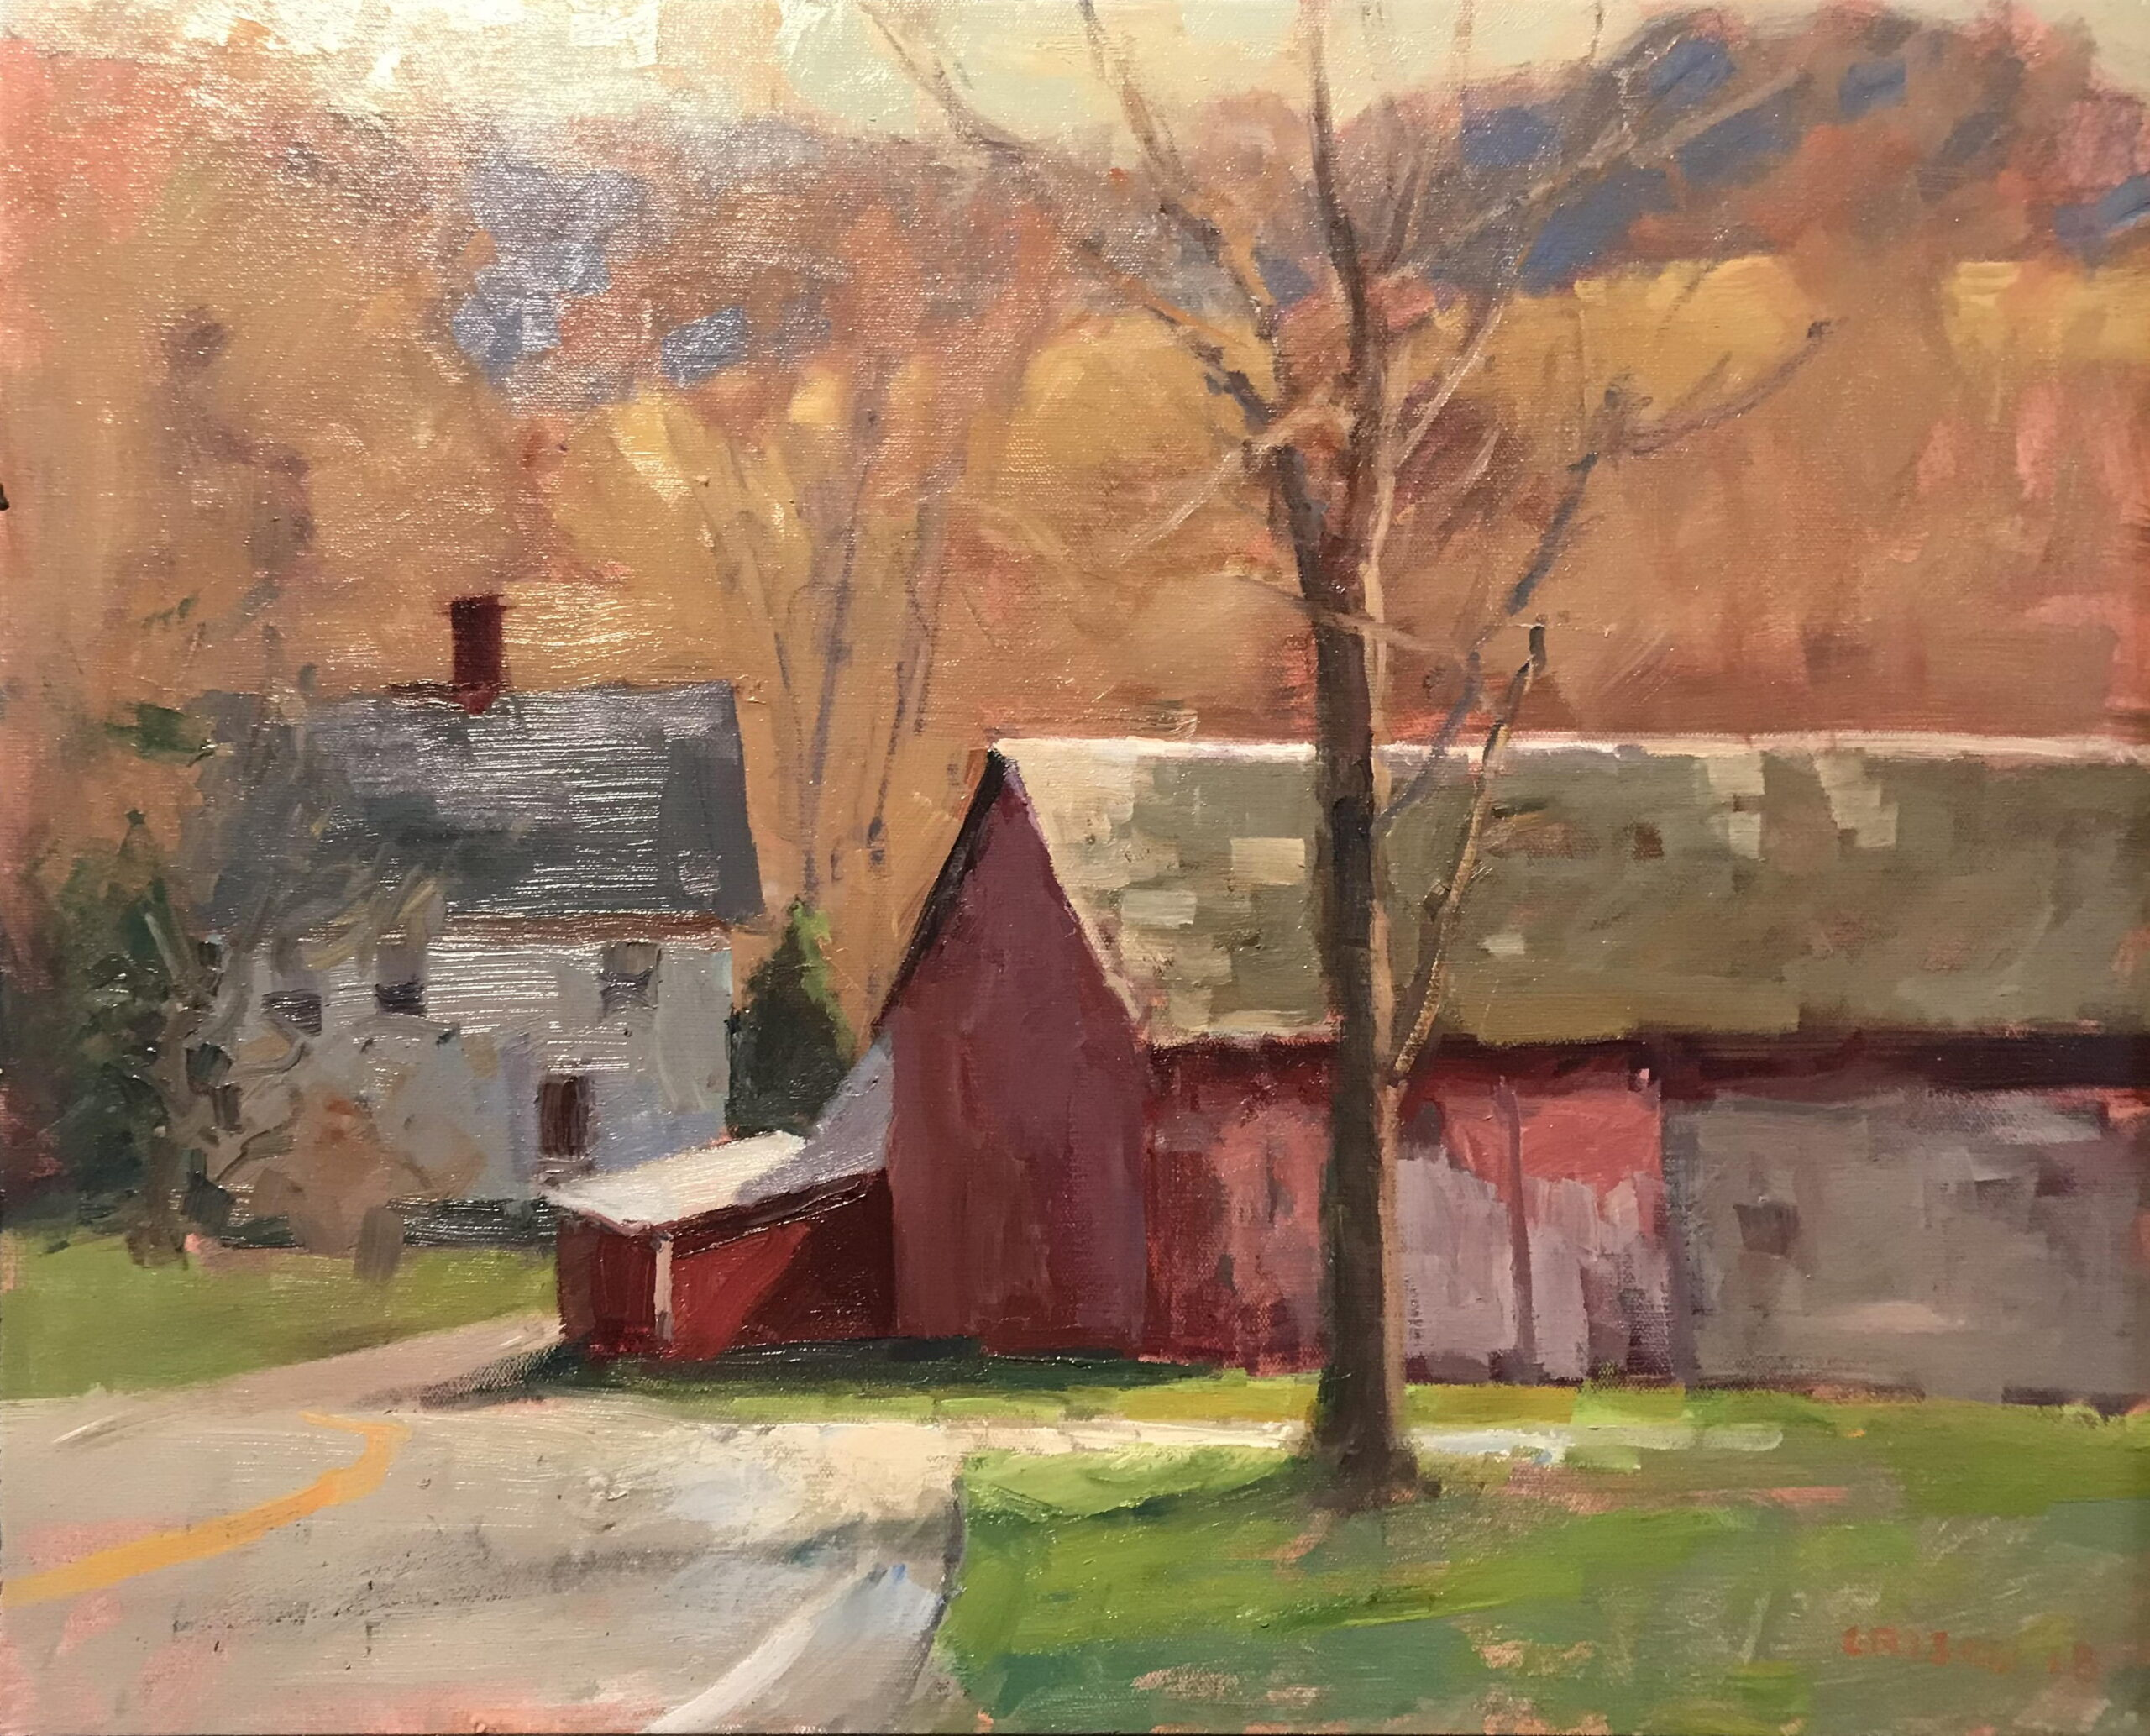 Barn and Farmhouse, Oil on Canvas, 18 x 24 Inches, by Susan Grisell, $750